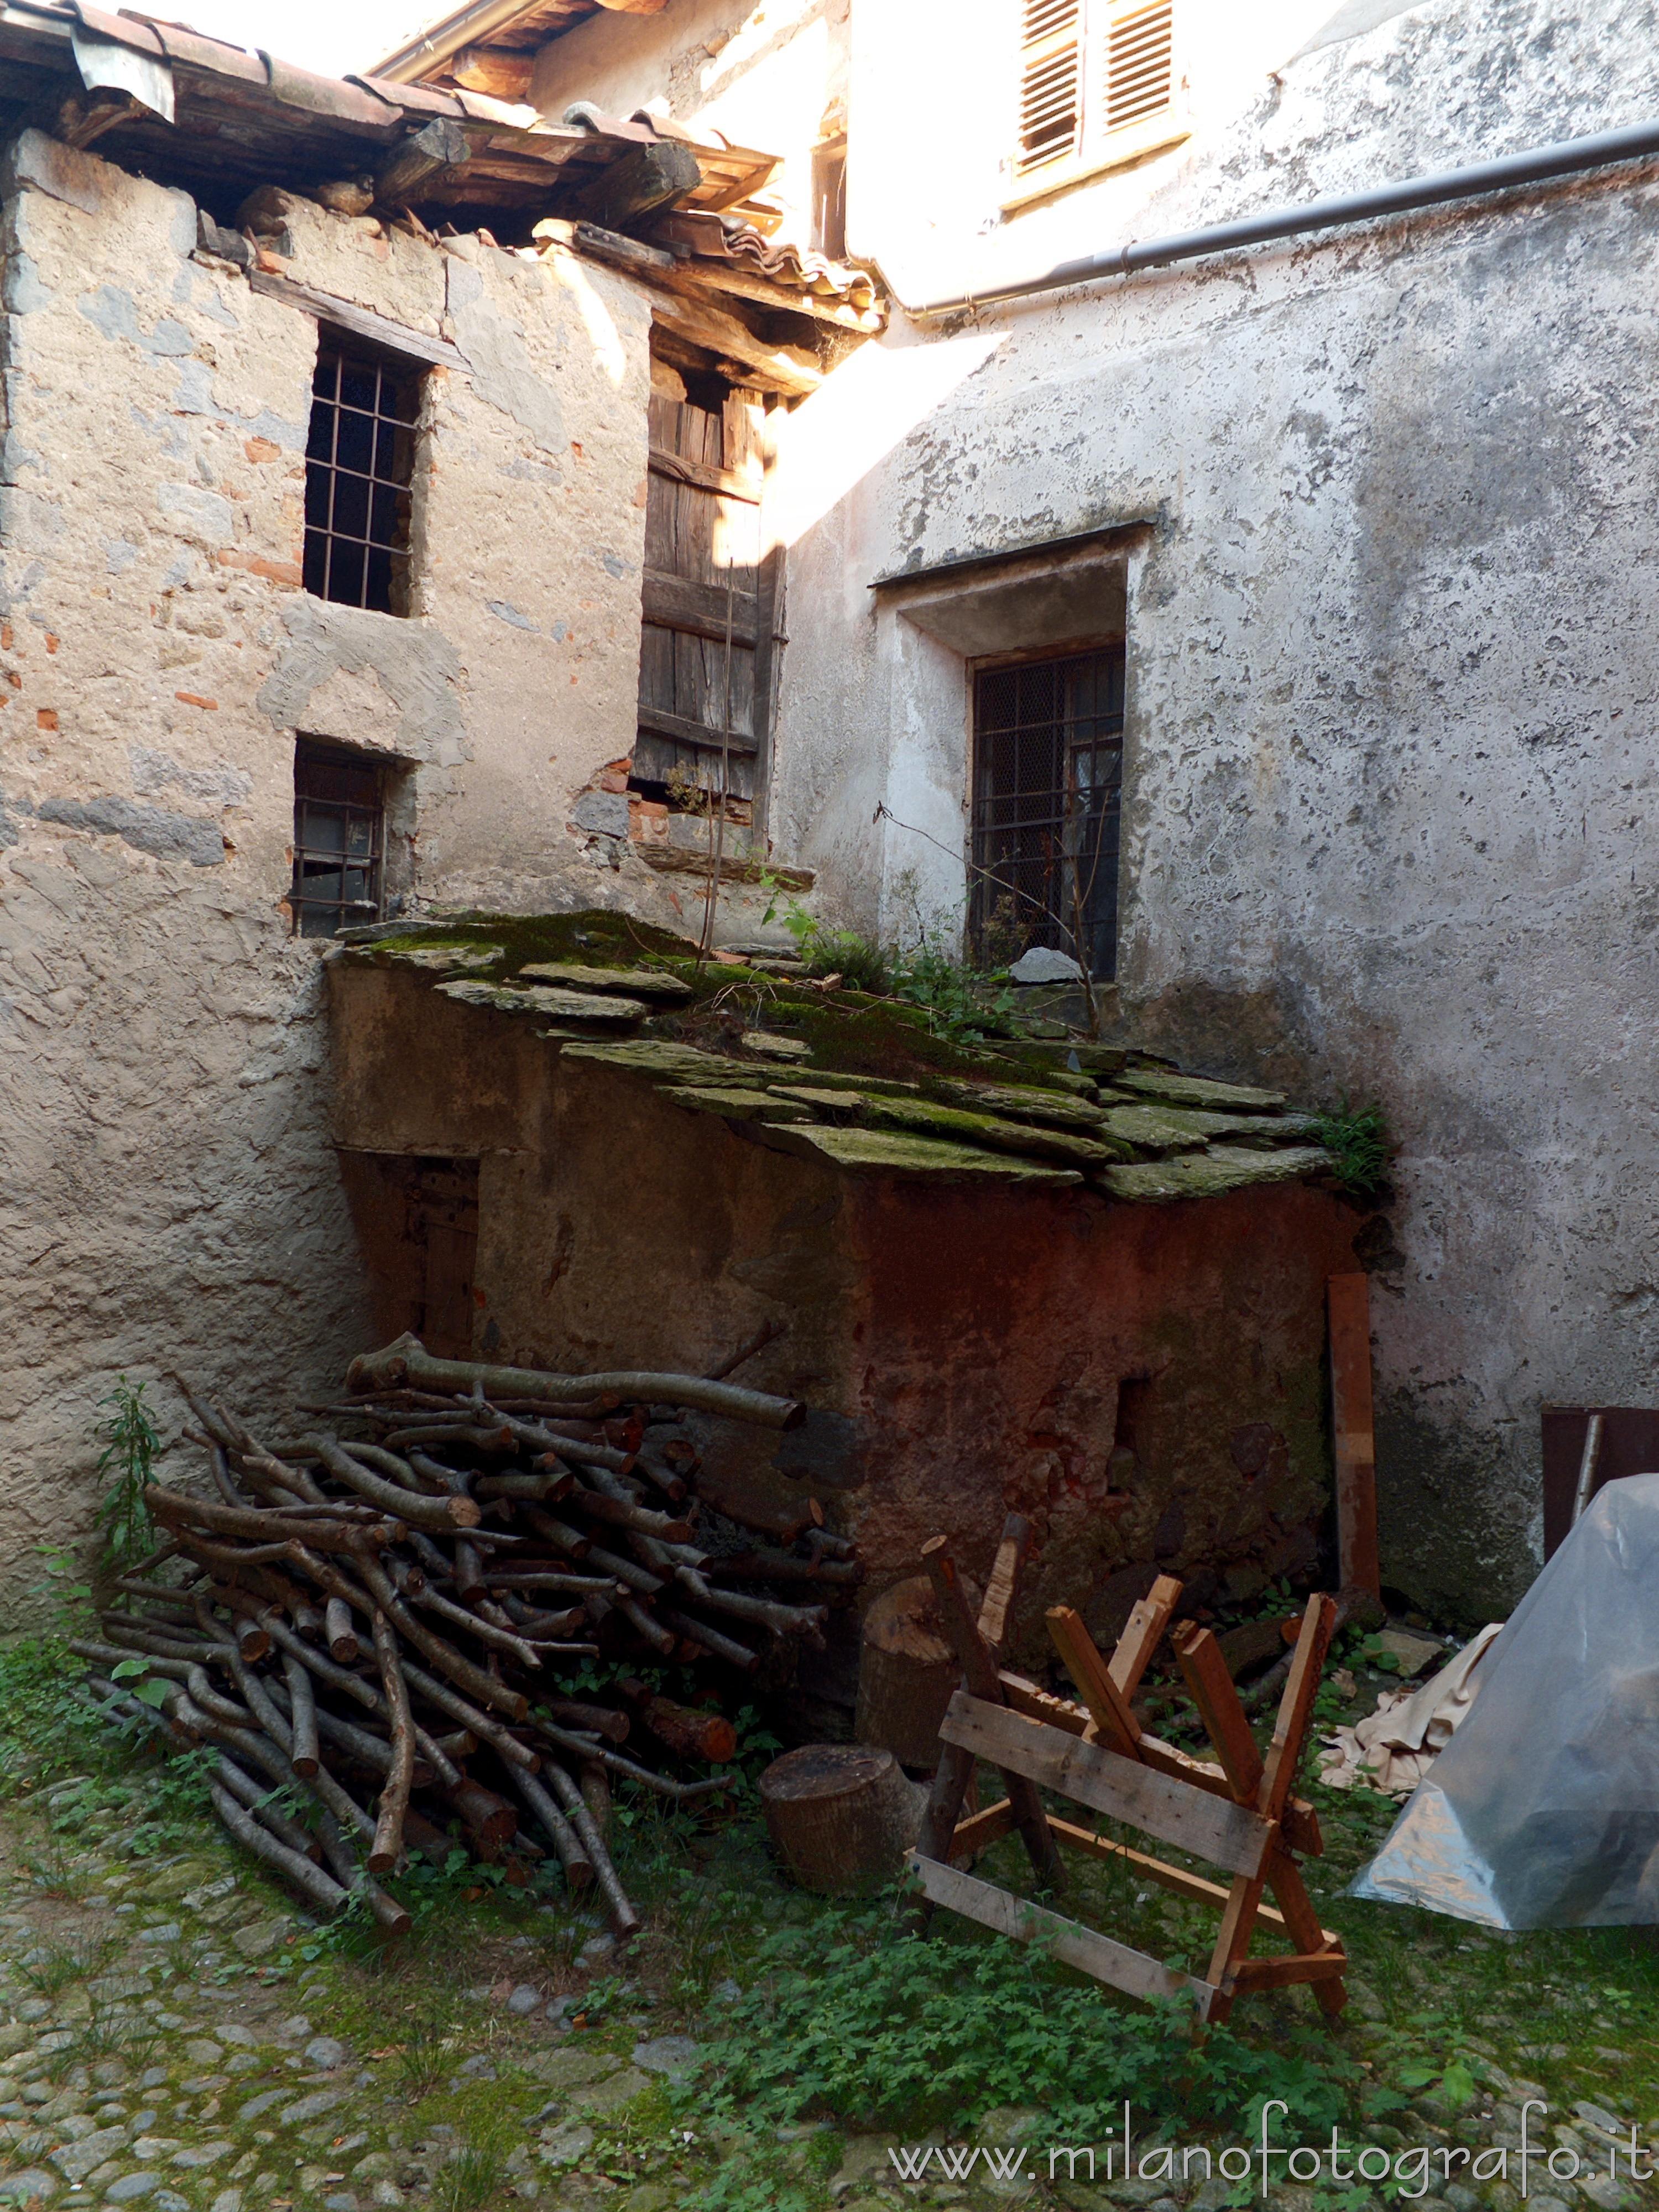 Passobreve fraction of Sagliano Micca (Biella, Italy): External storage room between the old houses of the village. - Passobreve fraction of Sagliano Micca (Biella, Italy)